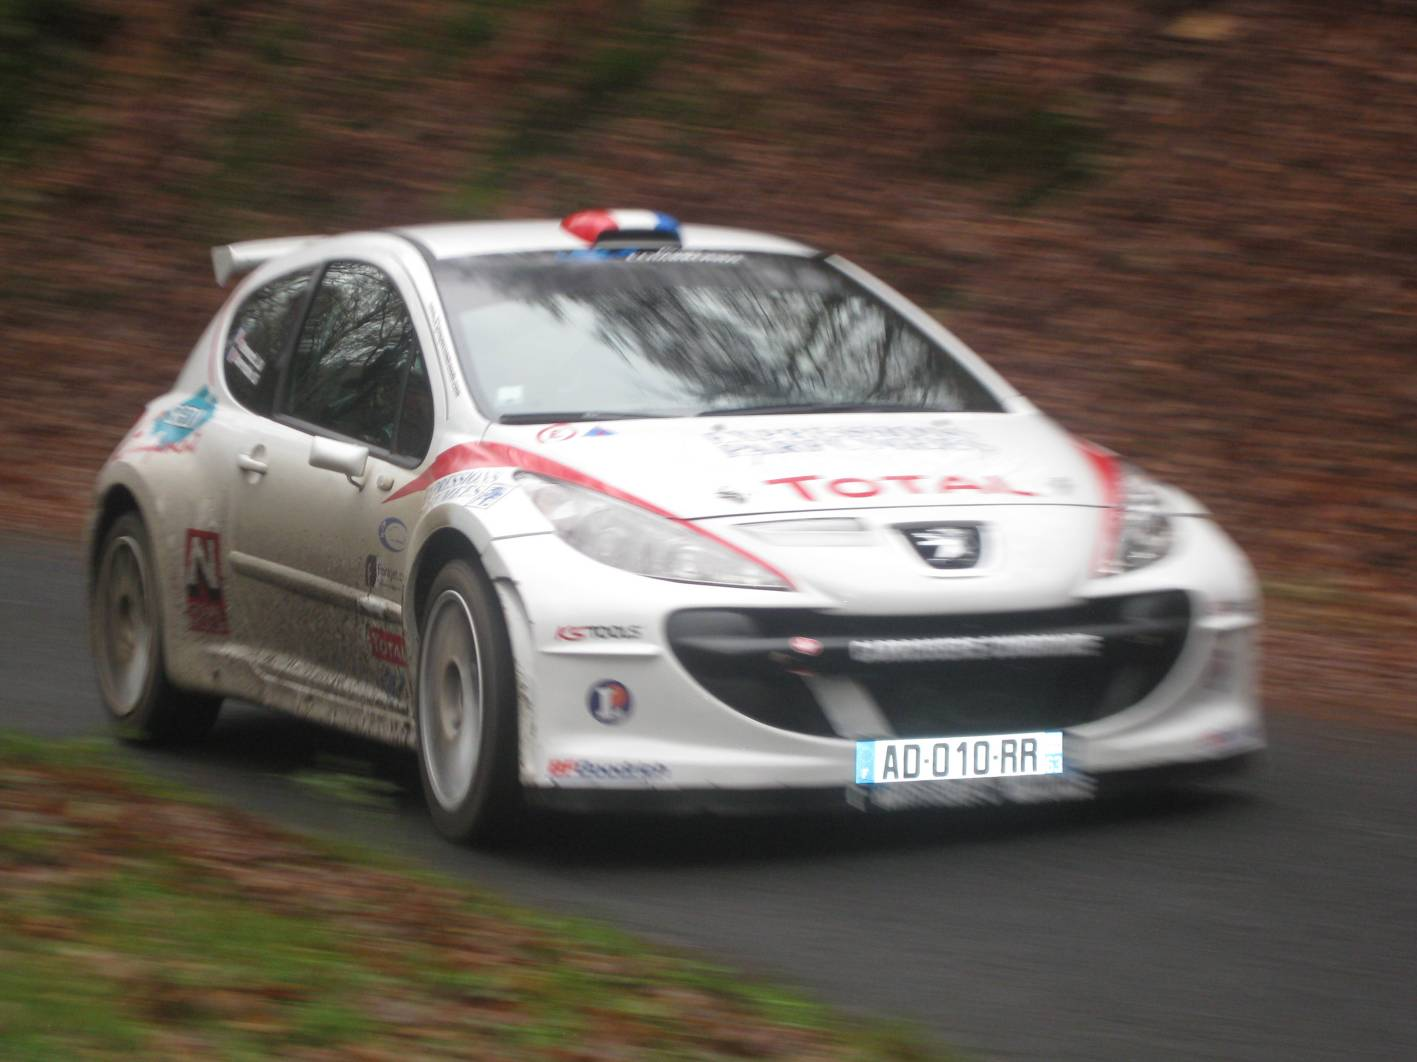 Promising Peugeot rally test for Evans